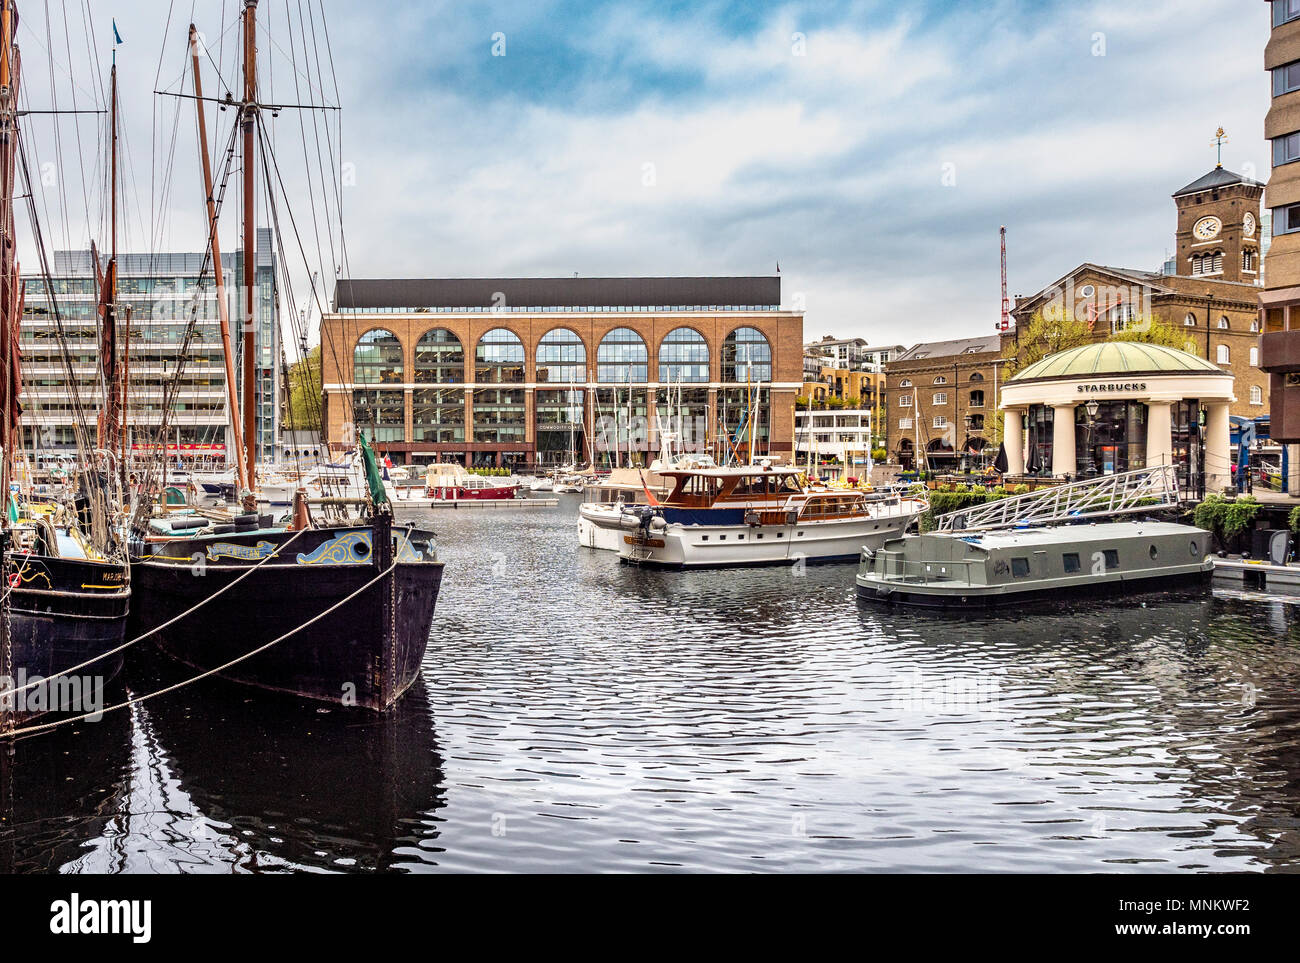 St Katharine Docks housing and leisure complex, Borough of Tower Hamlets, on the north side of the river Thames  They were part of the Port of London, - Stock Image